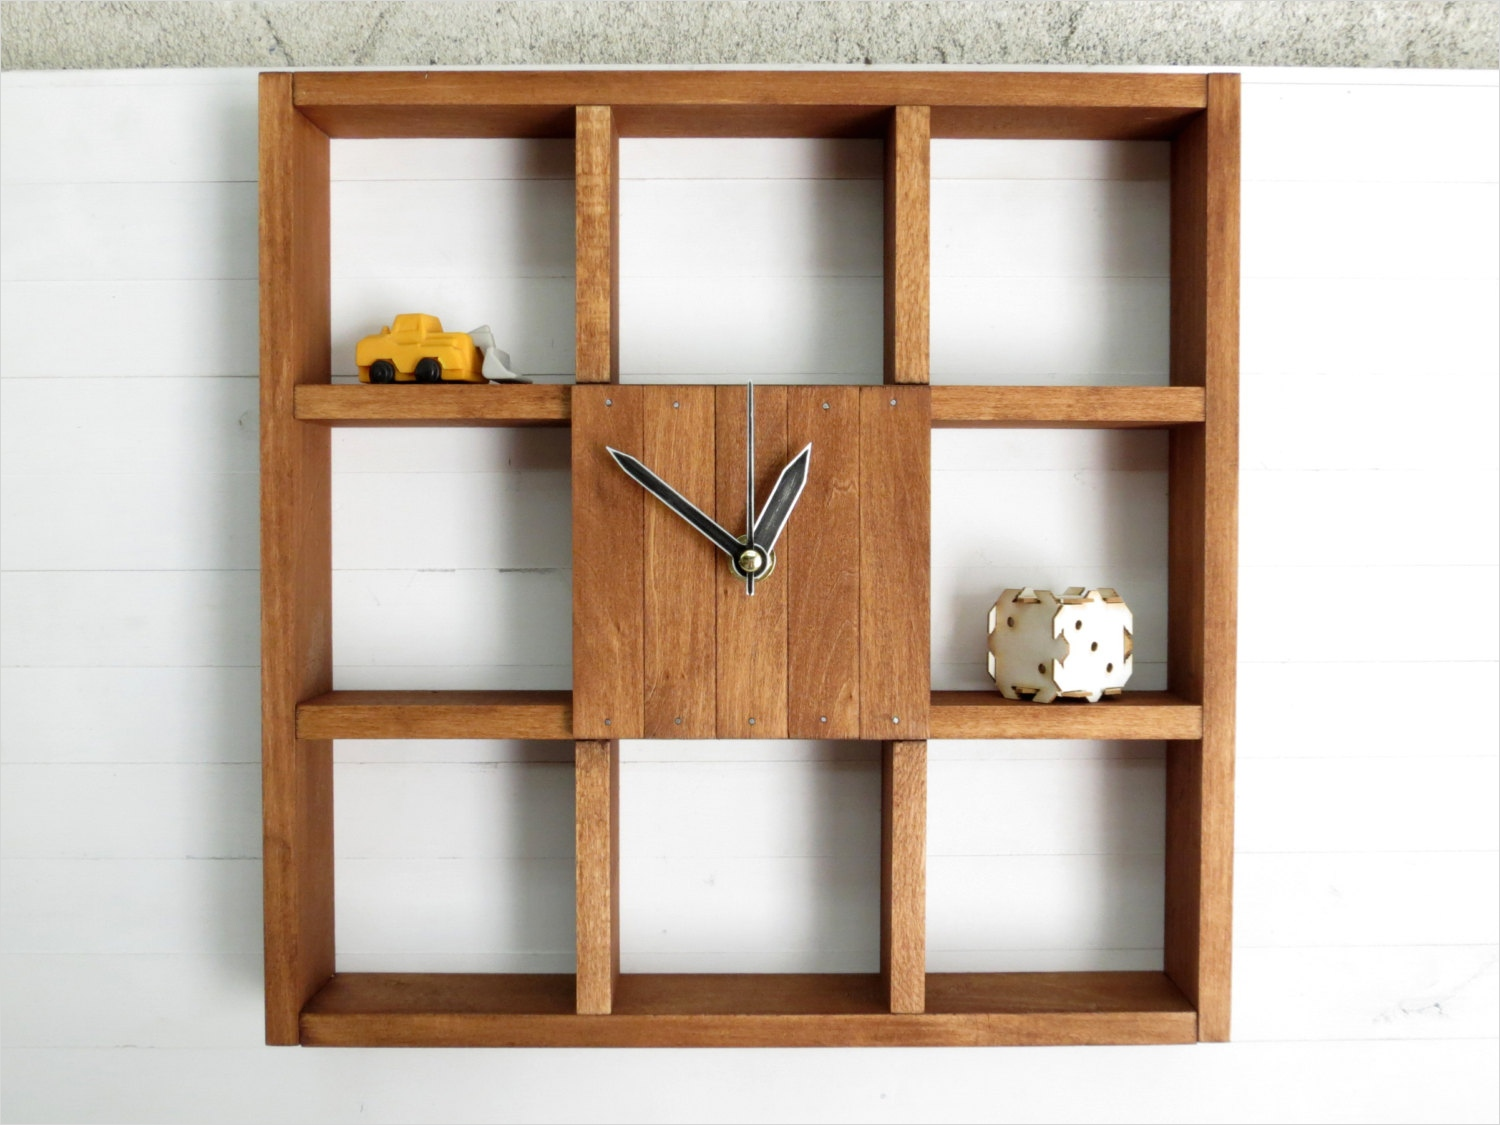 45 Creative Rustic Wall Mounted Bookshelves 63 Wall Clock Shadow Box Shelf Rustic Centerpiece Wall 4